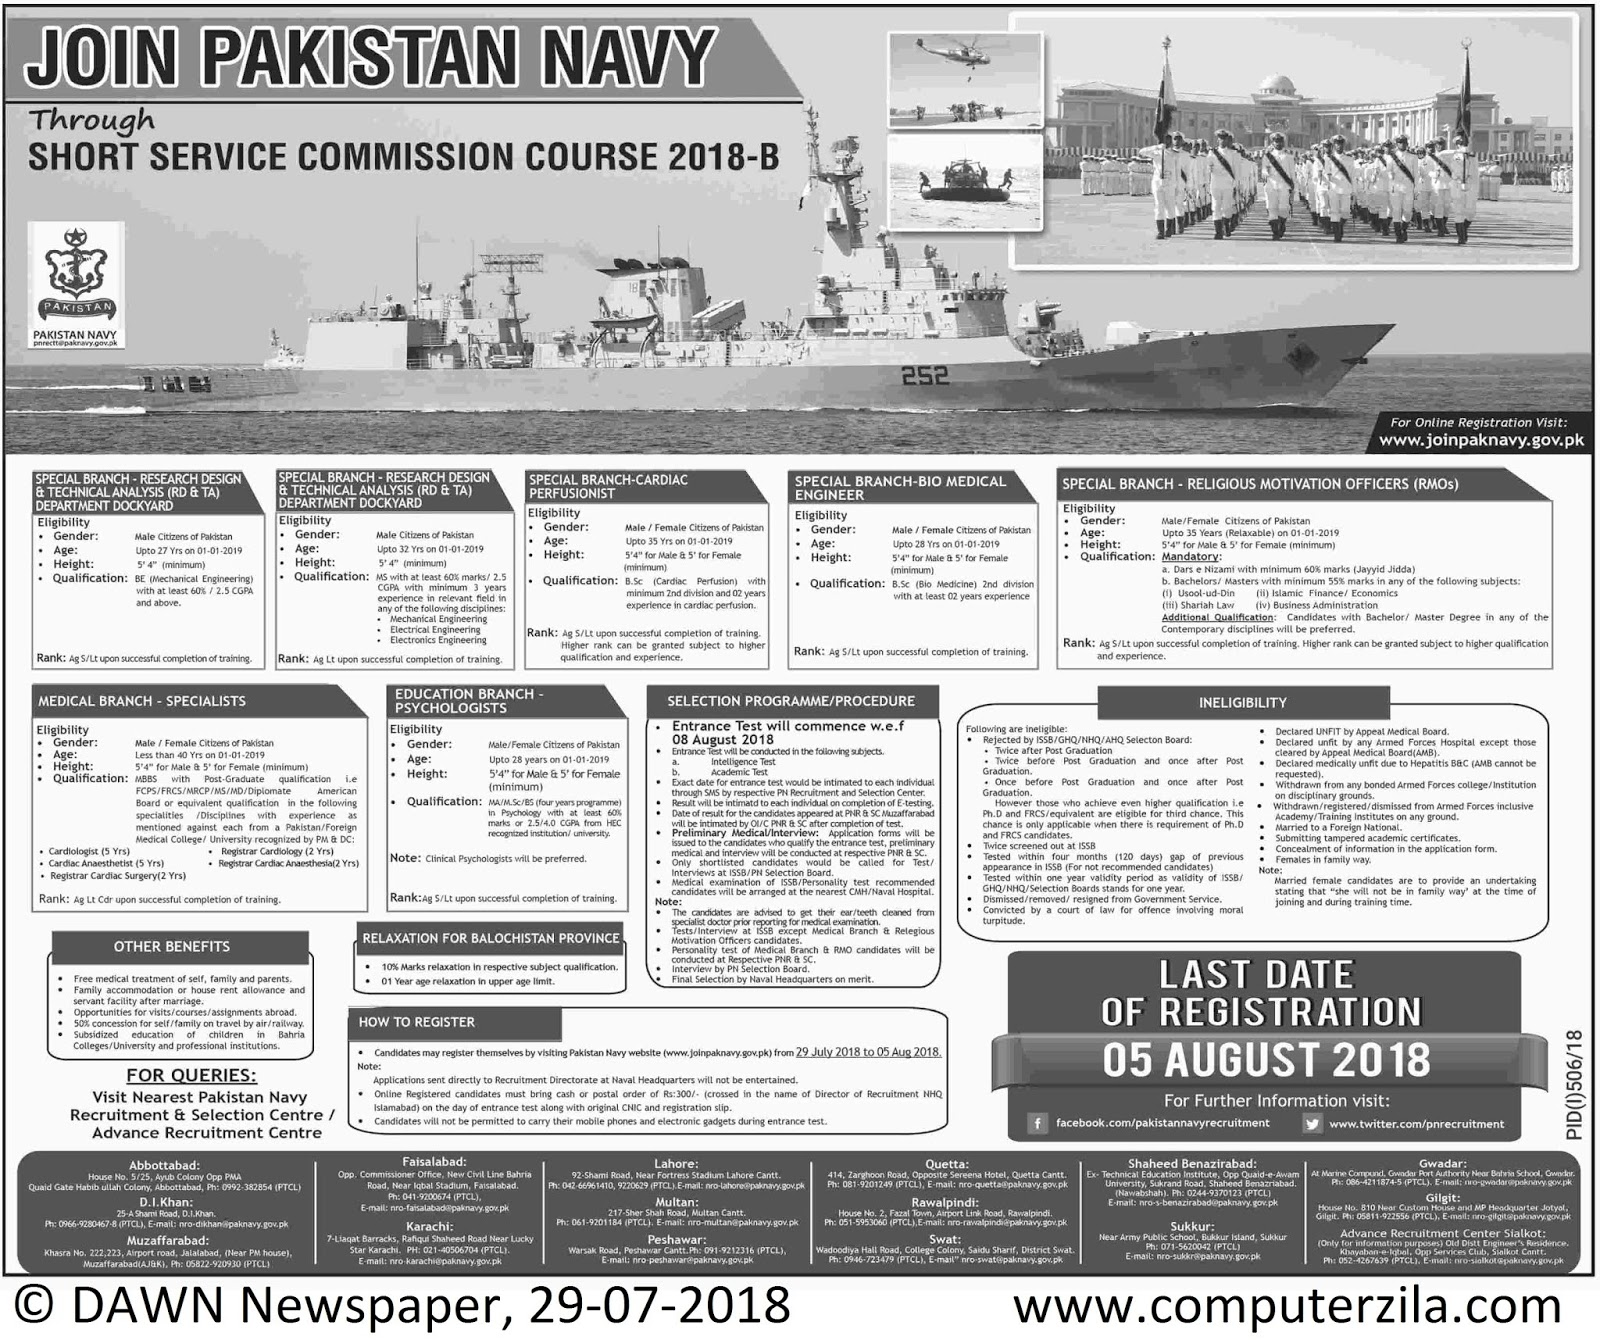 Short Service Commission Course 2018-B at Pakistan Navy